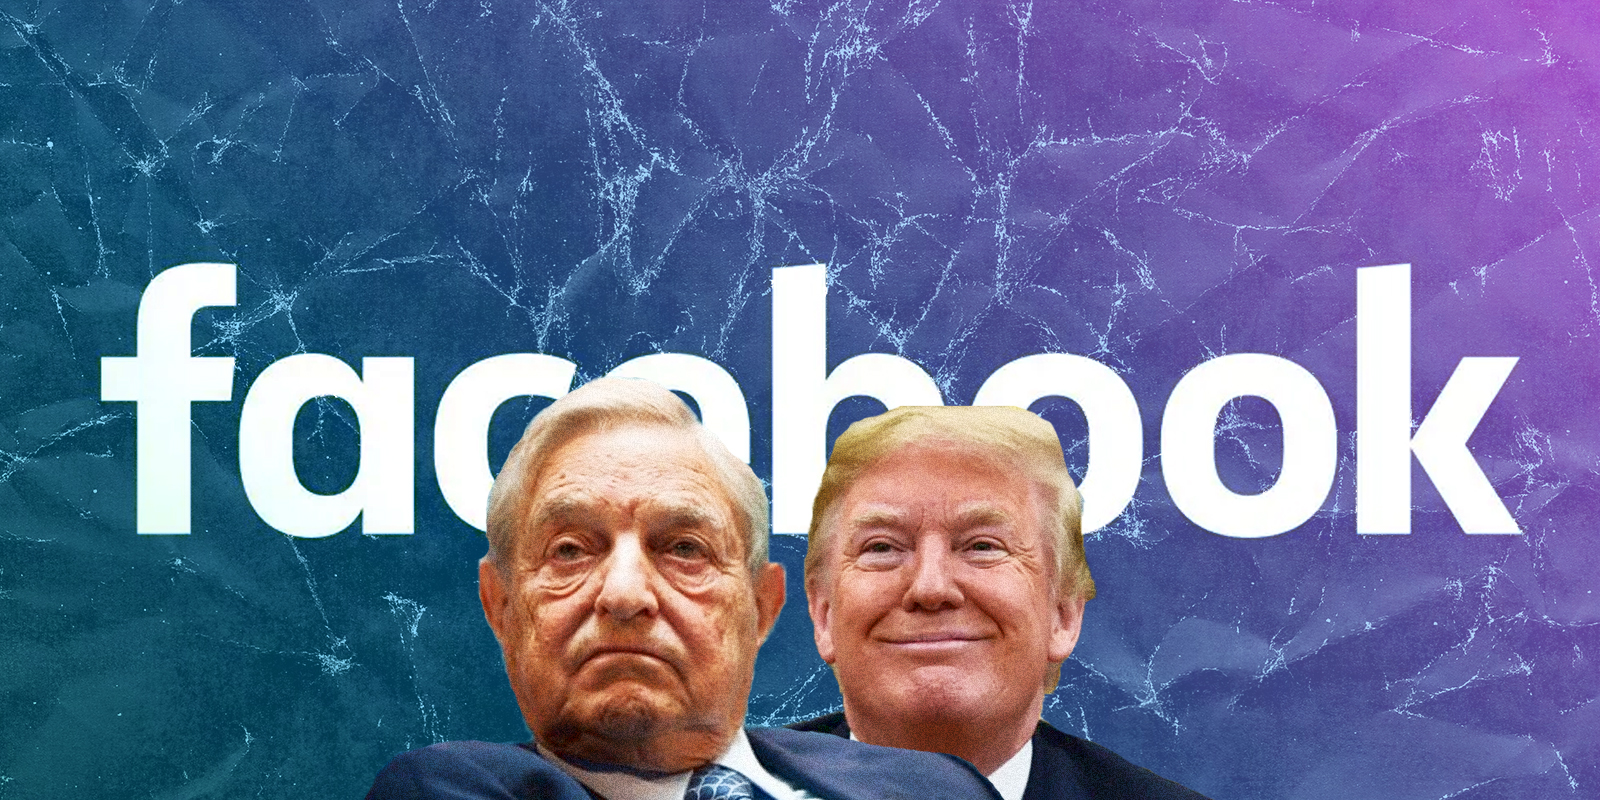 George Soros claims that Facebook is working with Trump to get him re-elected